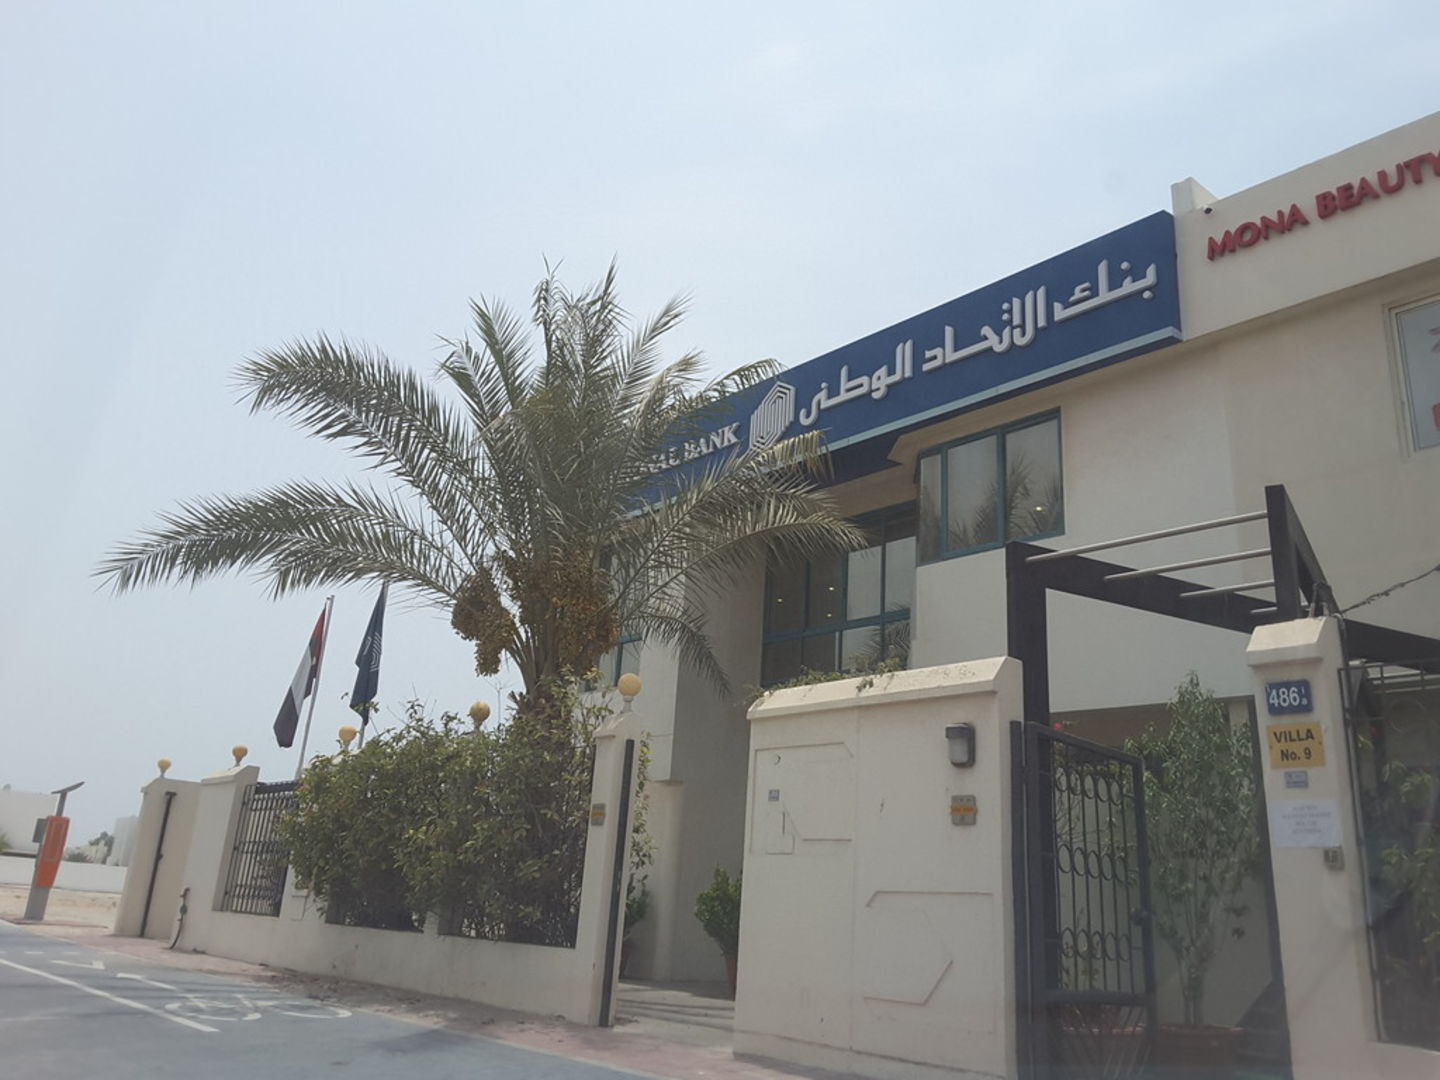 HiDubai-business-union-national-bank-finance-legal-banks-atms-jumeirah-2-dubai-2